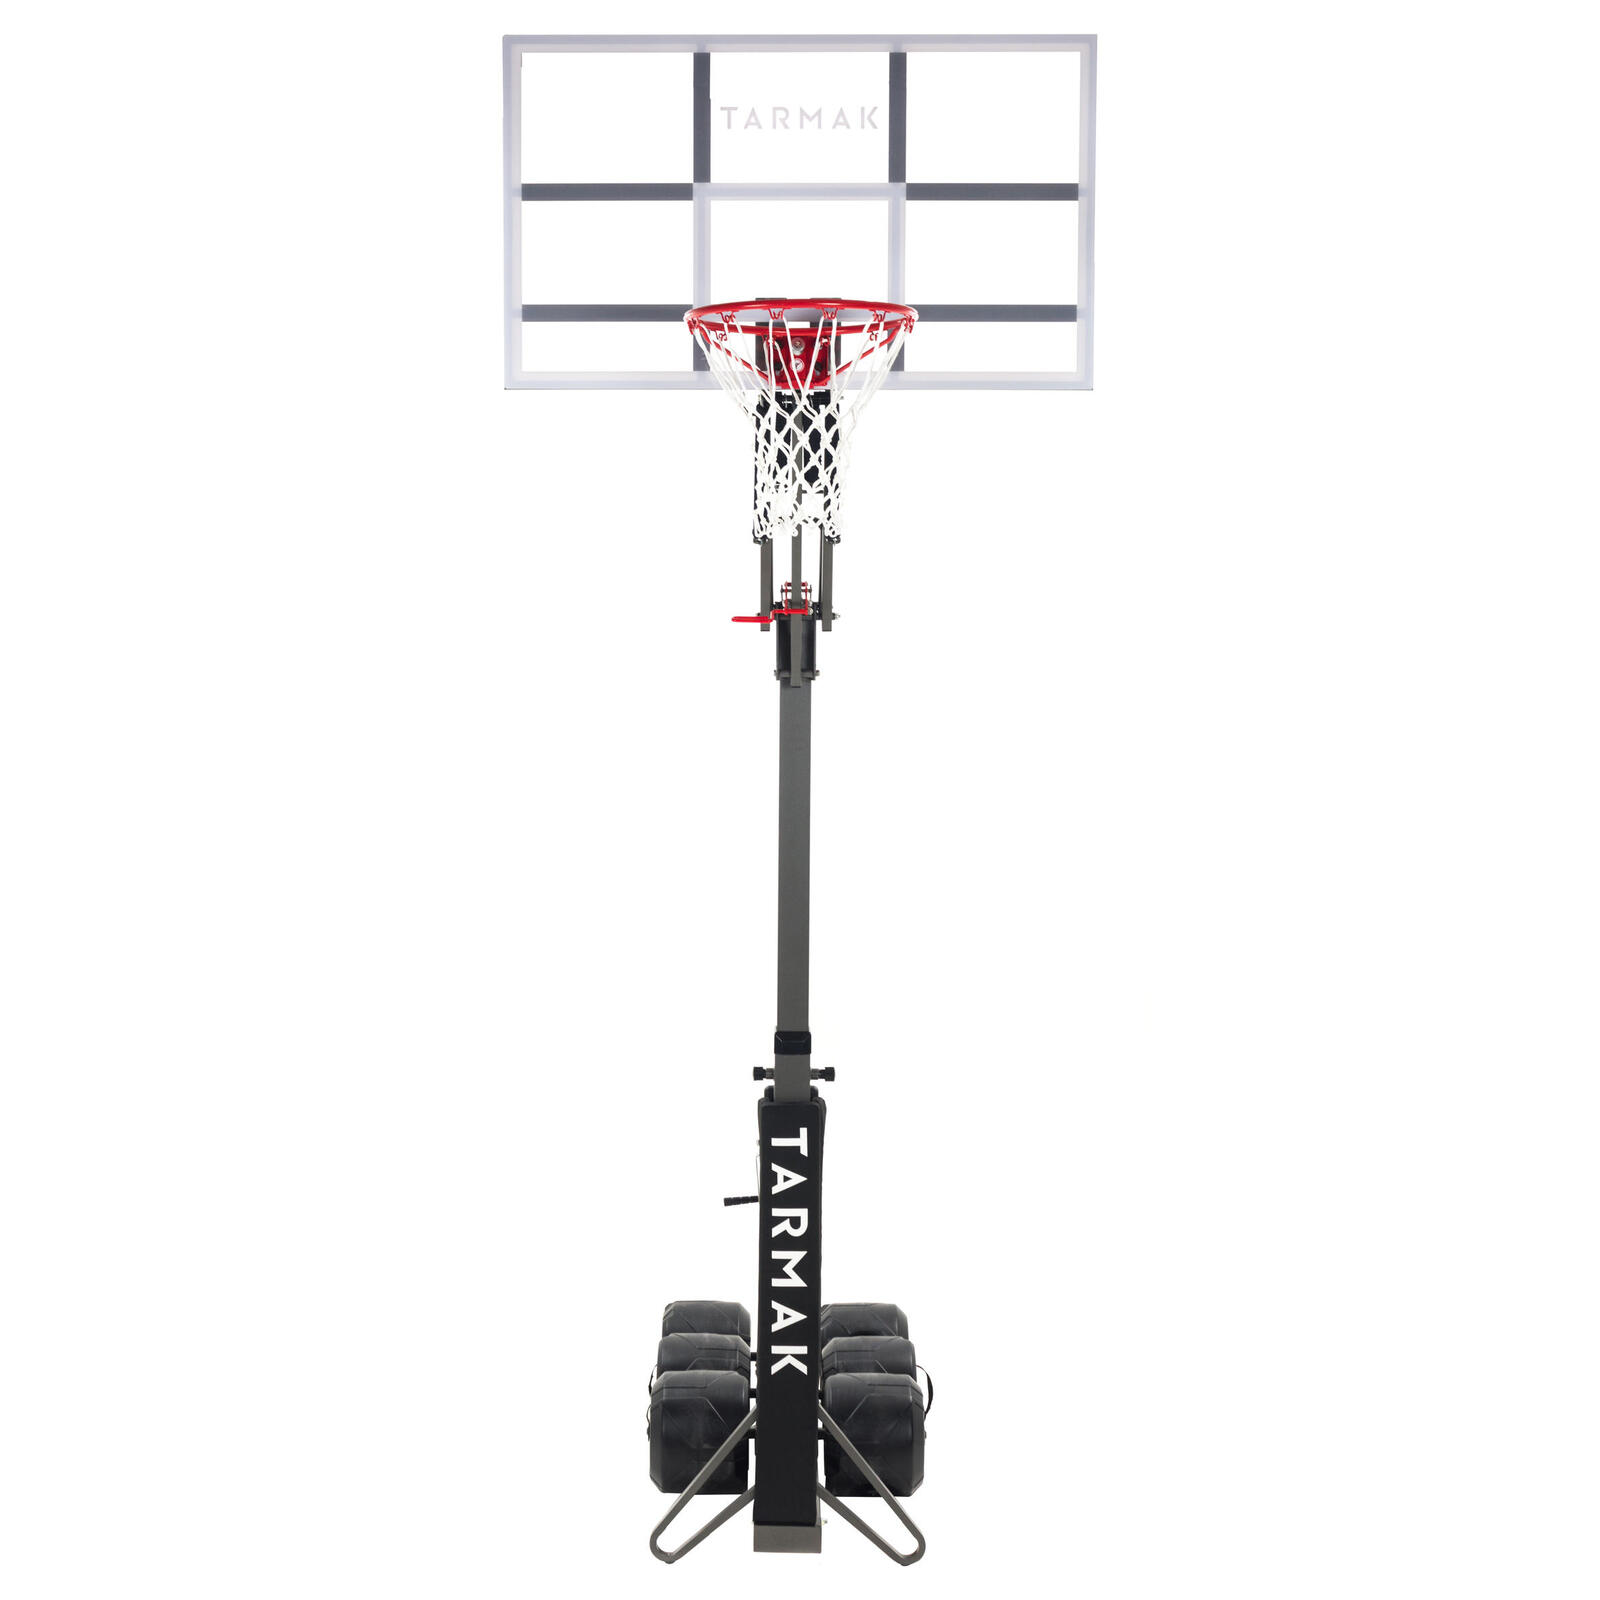 Pro basketball hoop stand black adjusts from 2.4m to 3.05m